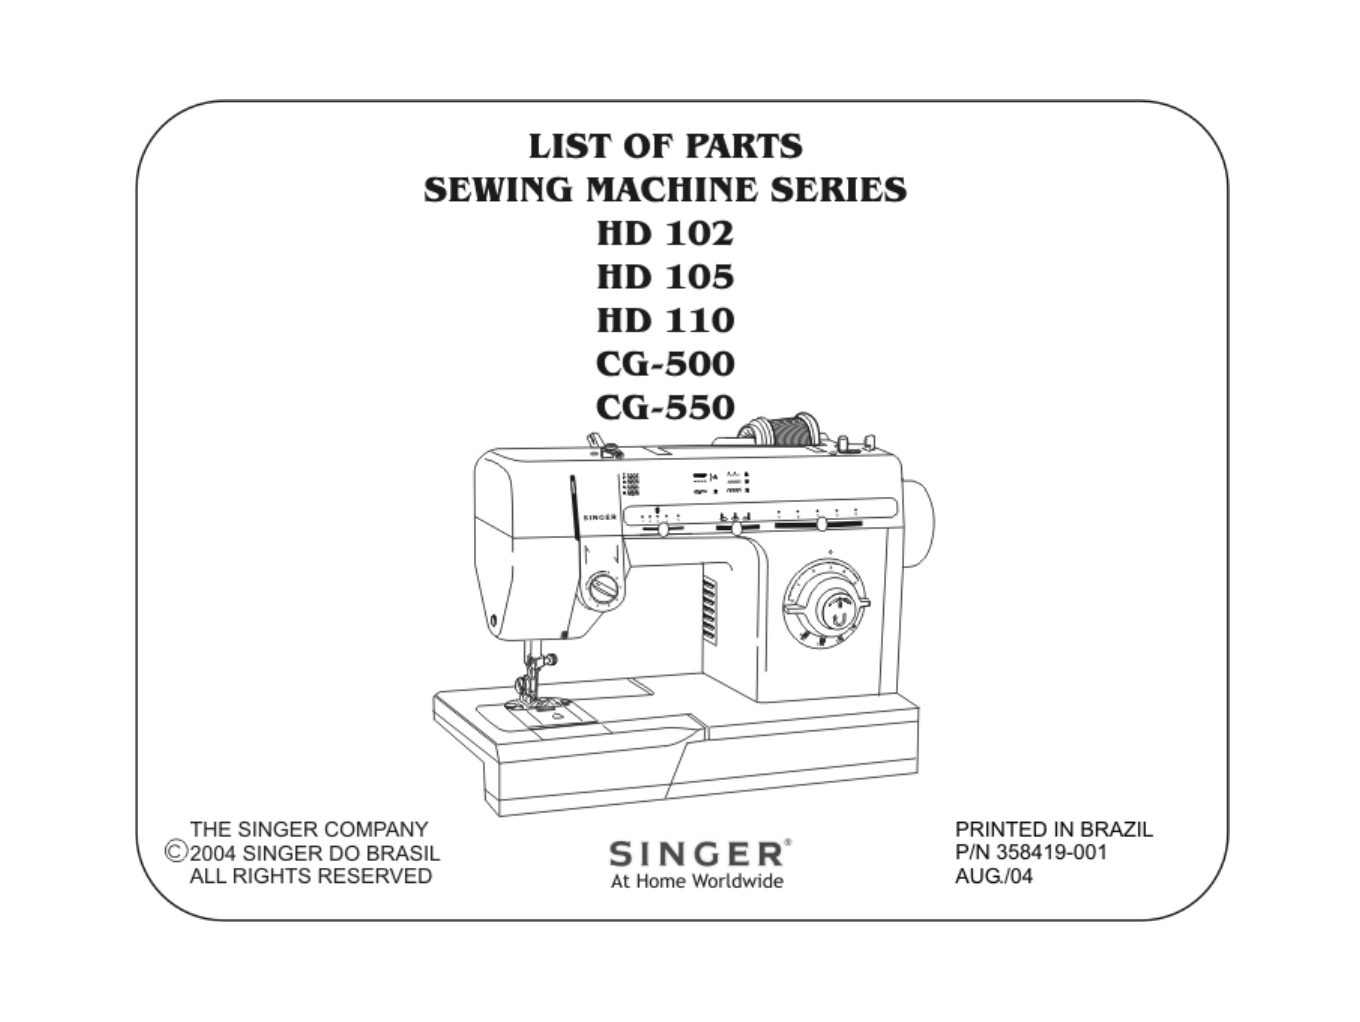 MNL-0721] White Sewing Machine Manuals Online | 2019 Ebook Liry